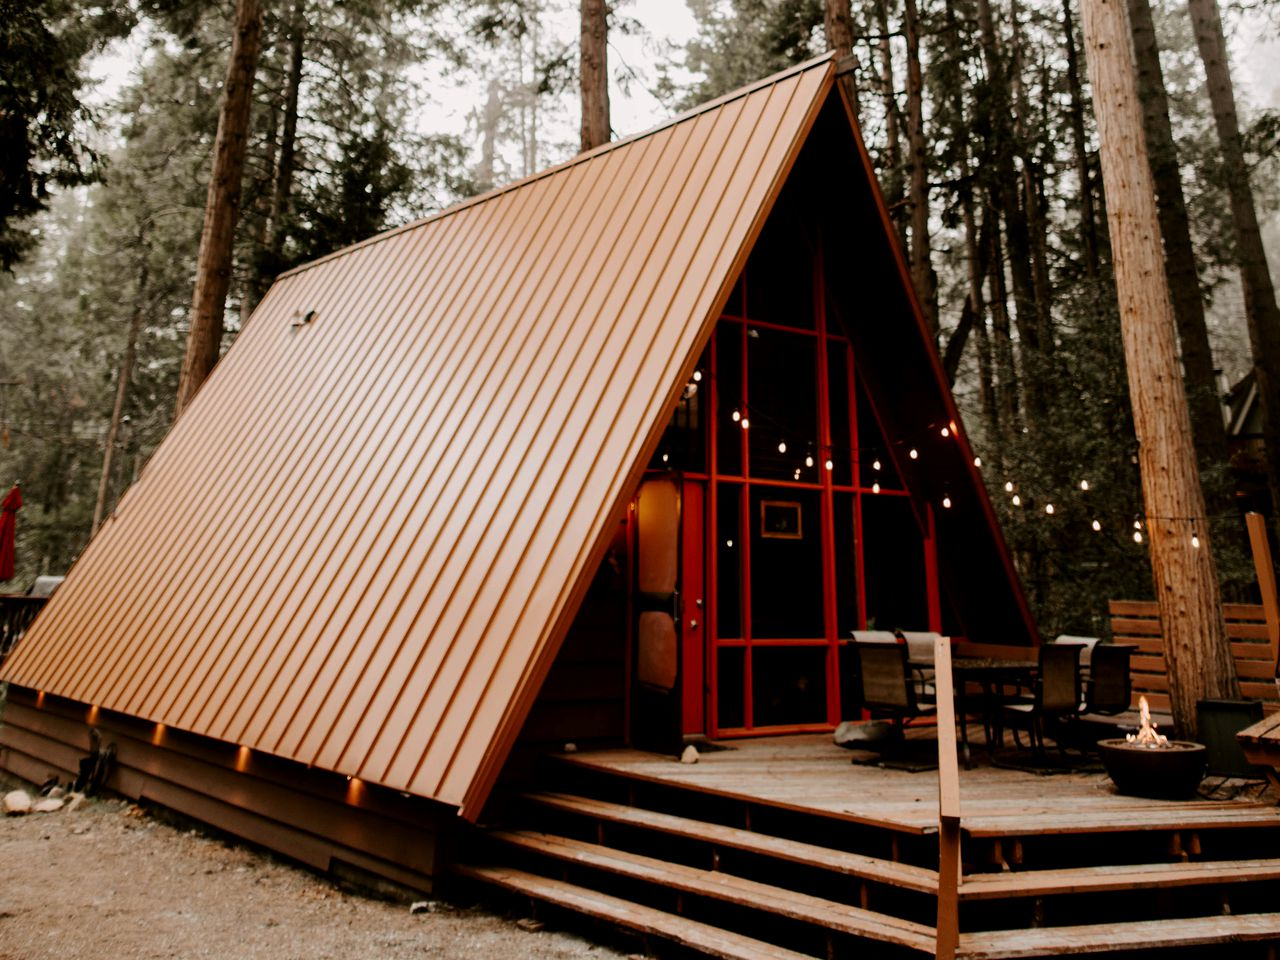 A-Frame Cabin Idllywild (Idyllwild-Pine Cove, California, United States)